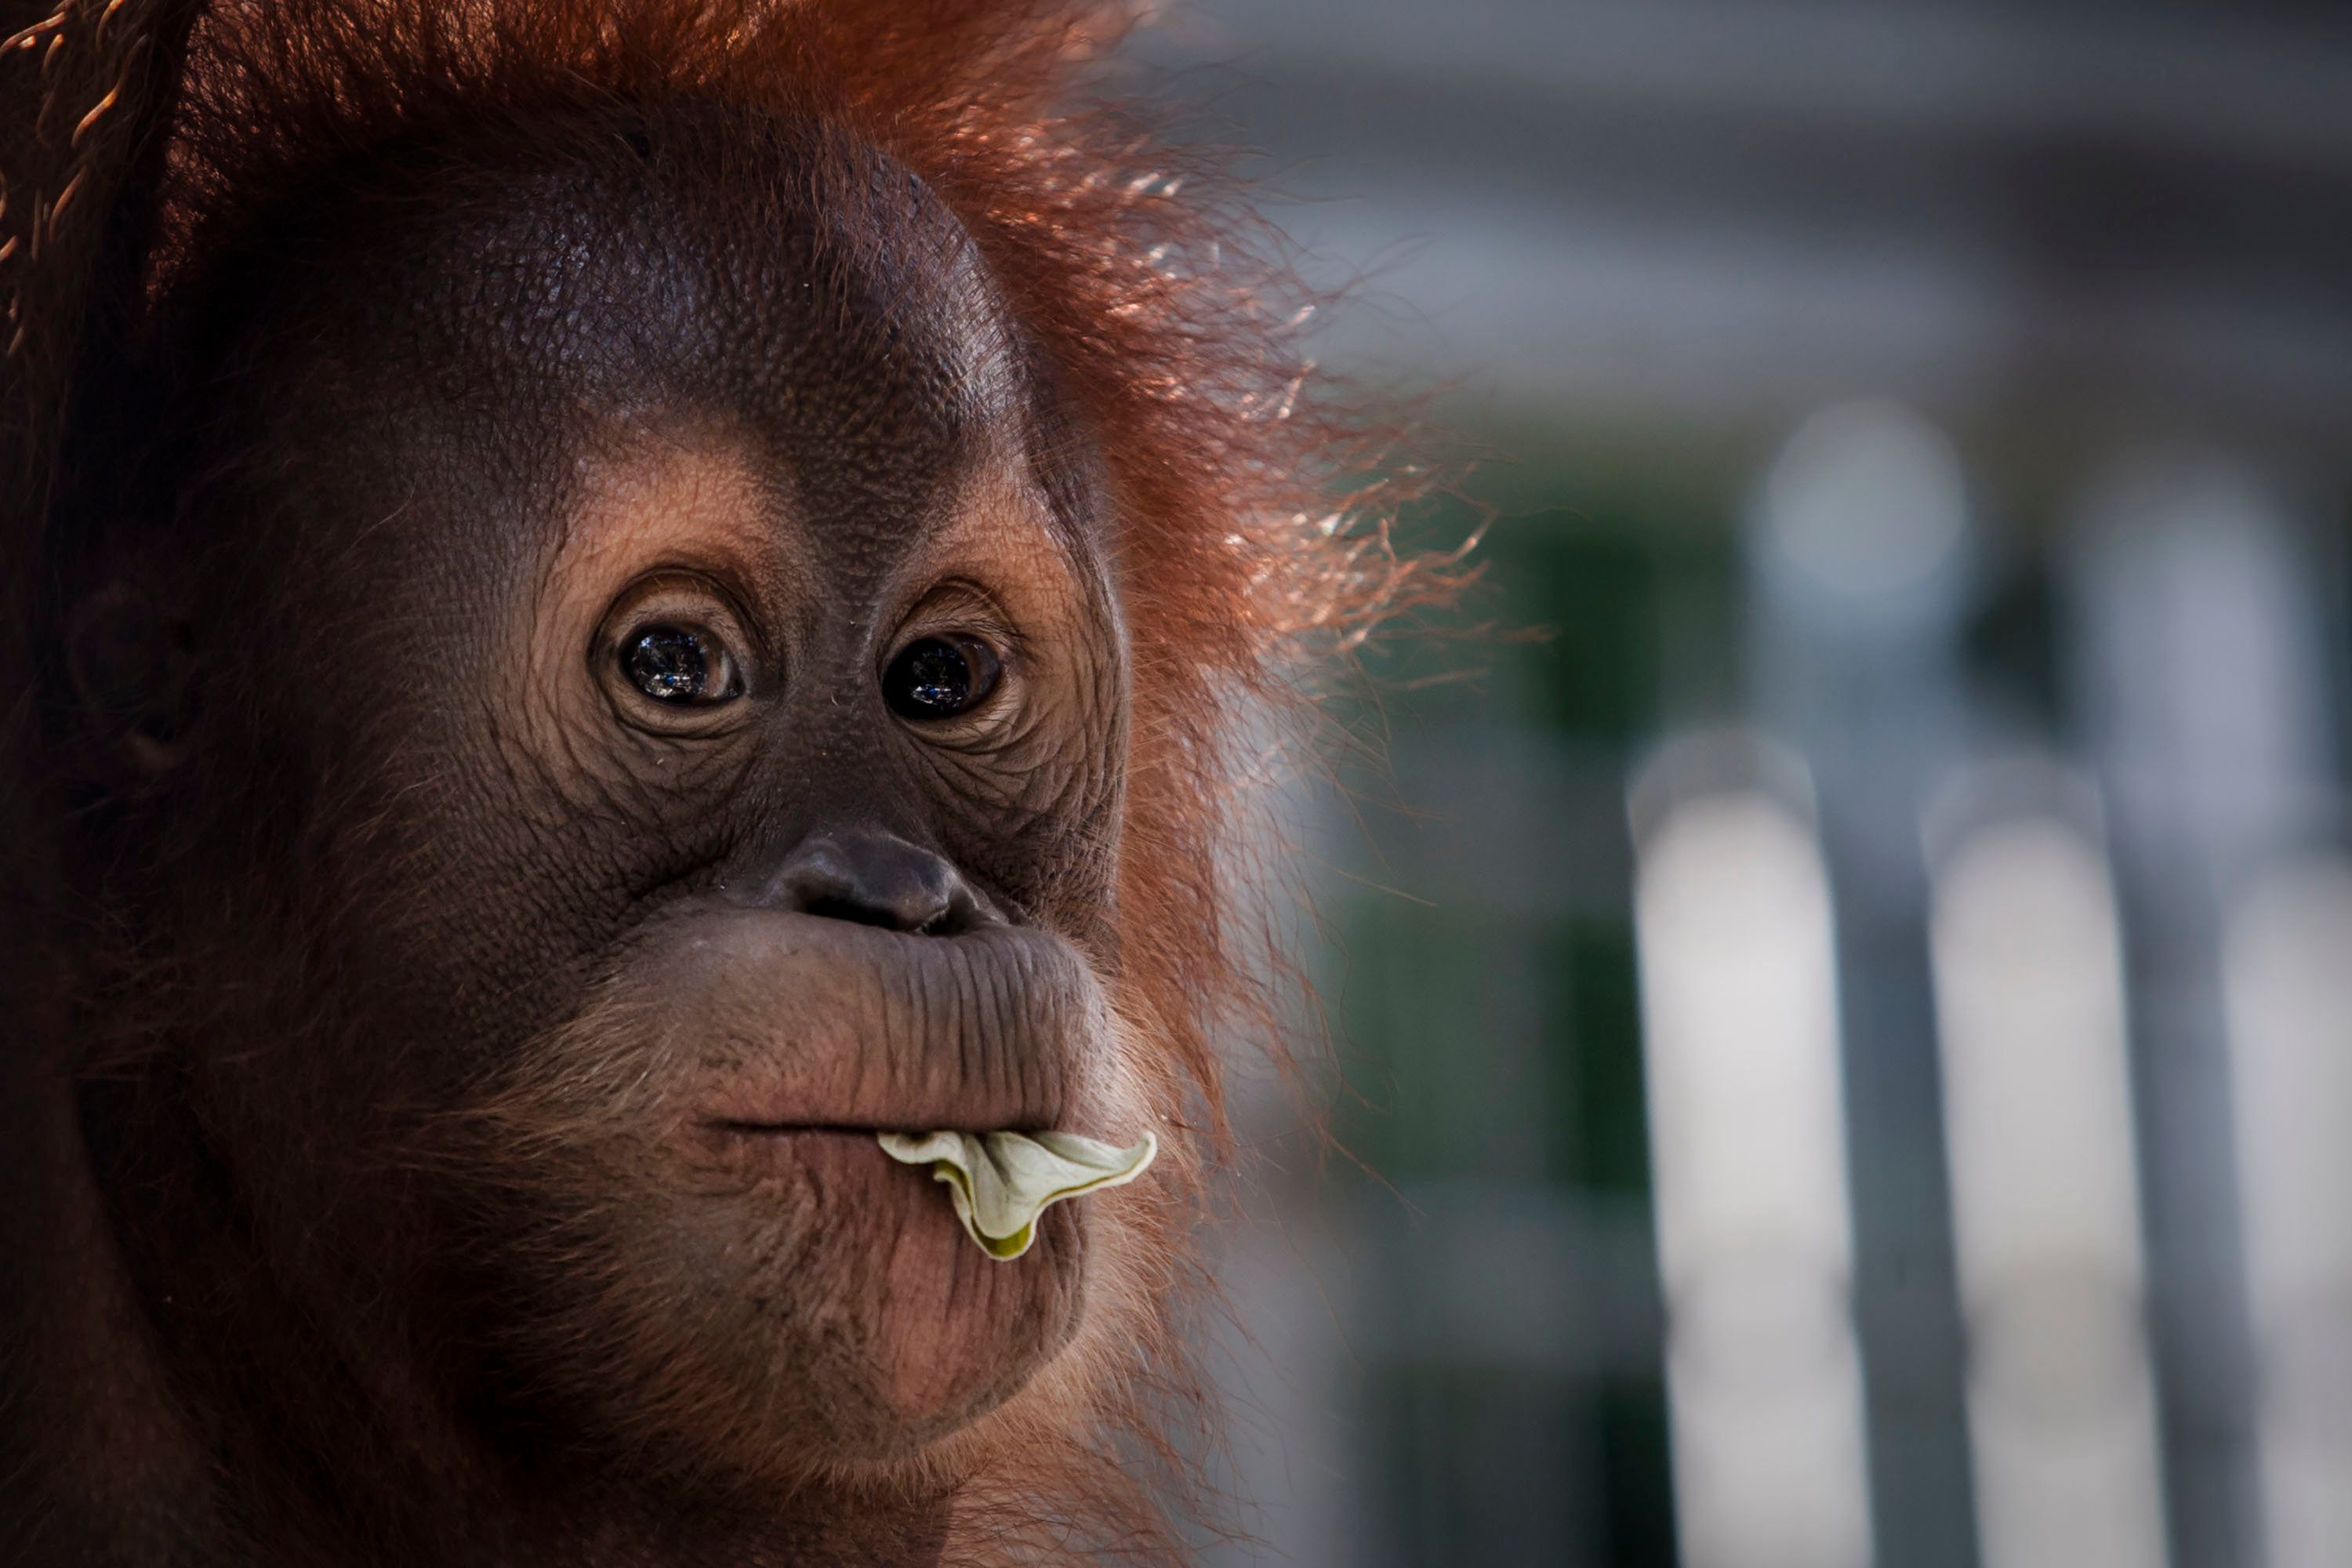 NORTH SUMATRA, INDONESIA - NOVEMBER 11:  A sumatran orangutan (Pongo abelii) is seen inside a cage at Sumatran Orangutan Conservation Programme's rehabilitation center on November 11, 2016 in Kuta Mbelin, North Sumatra, Indonesia. The Orangutans in Indonesia have been known to be on the verge of extinction as a result of deforestation and poaching. Found mostly in South-East Asia, where they live on the islands of Sumatra and Borneo, the endangered species continue to lose their habitat as a result of corporate expansion in a developing economy. Indonesia approved palm oil concessions on nearly 15 million acres of peatlands over the past years and thousands of square miles have been cleared for plantations, including the lowland areas that are the prime habitat for orangutans.  (Photo by Ulet Ifansasti/Getty Images)